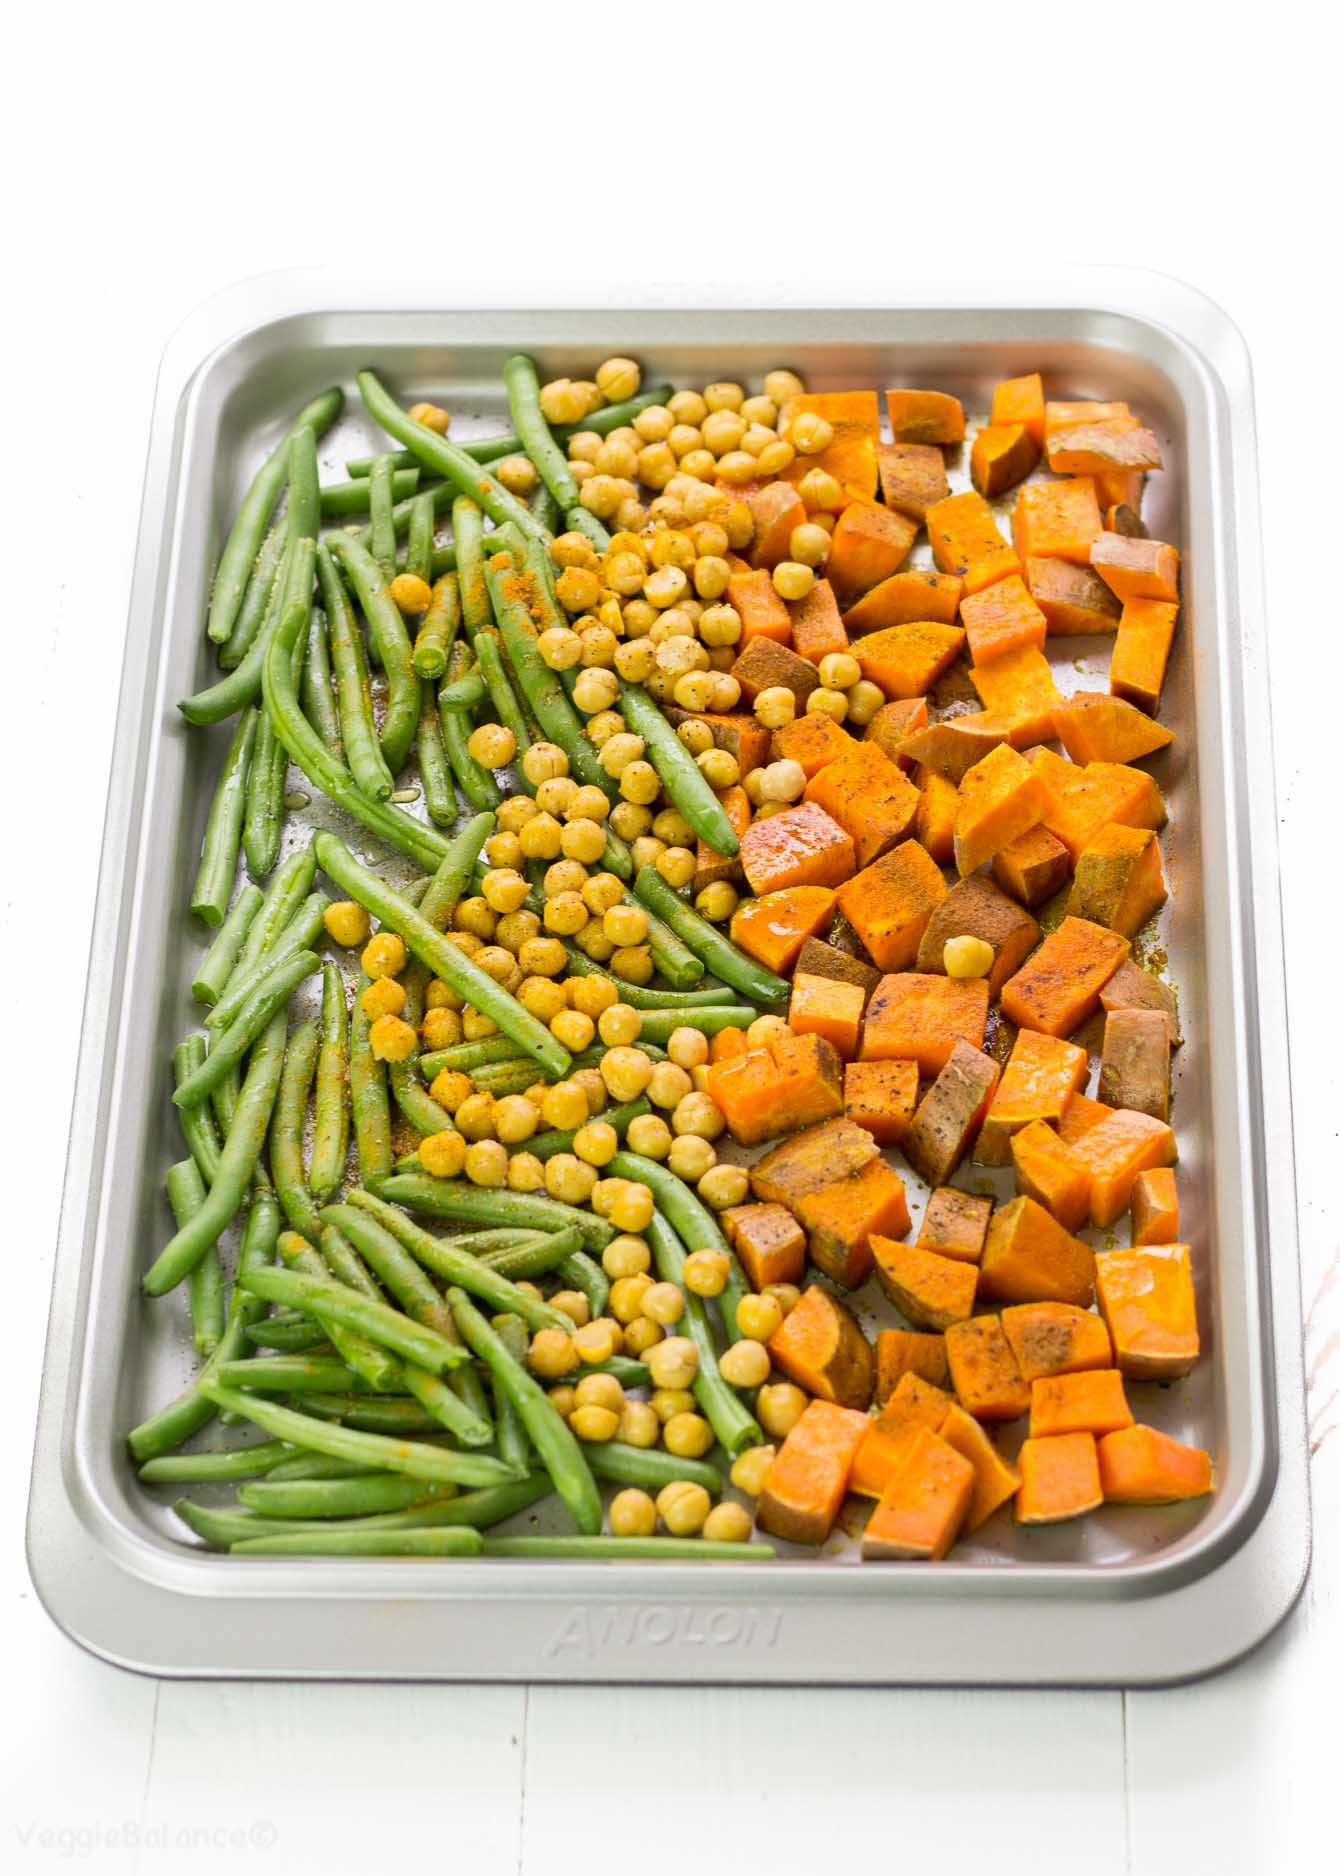 Turmeric Roasted Sweet Potato, Green Beans and Crunchy Chickpeas - Veggiebalance.com